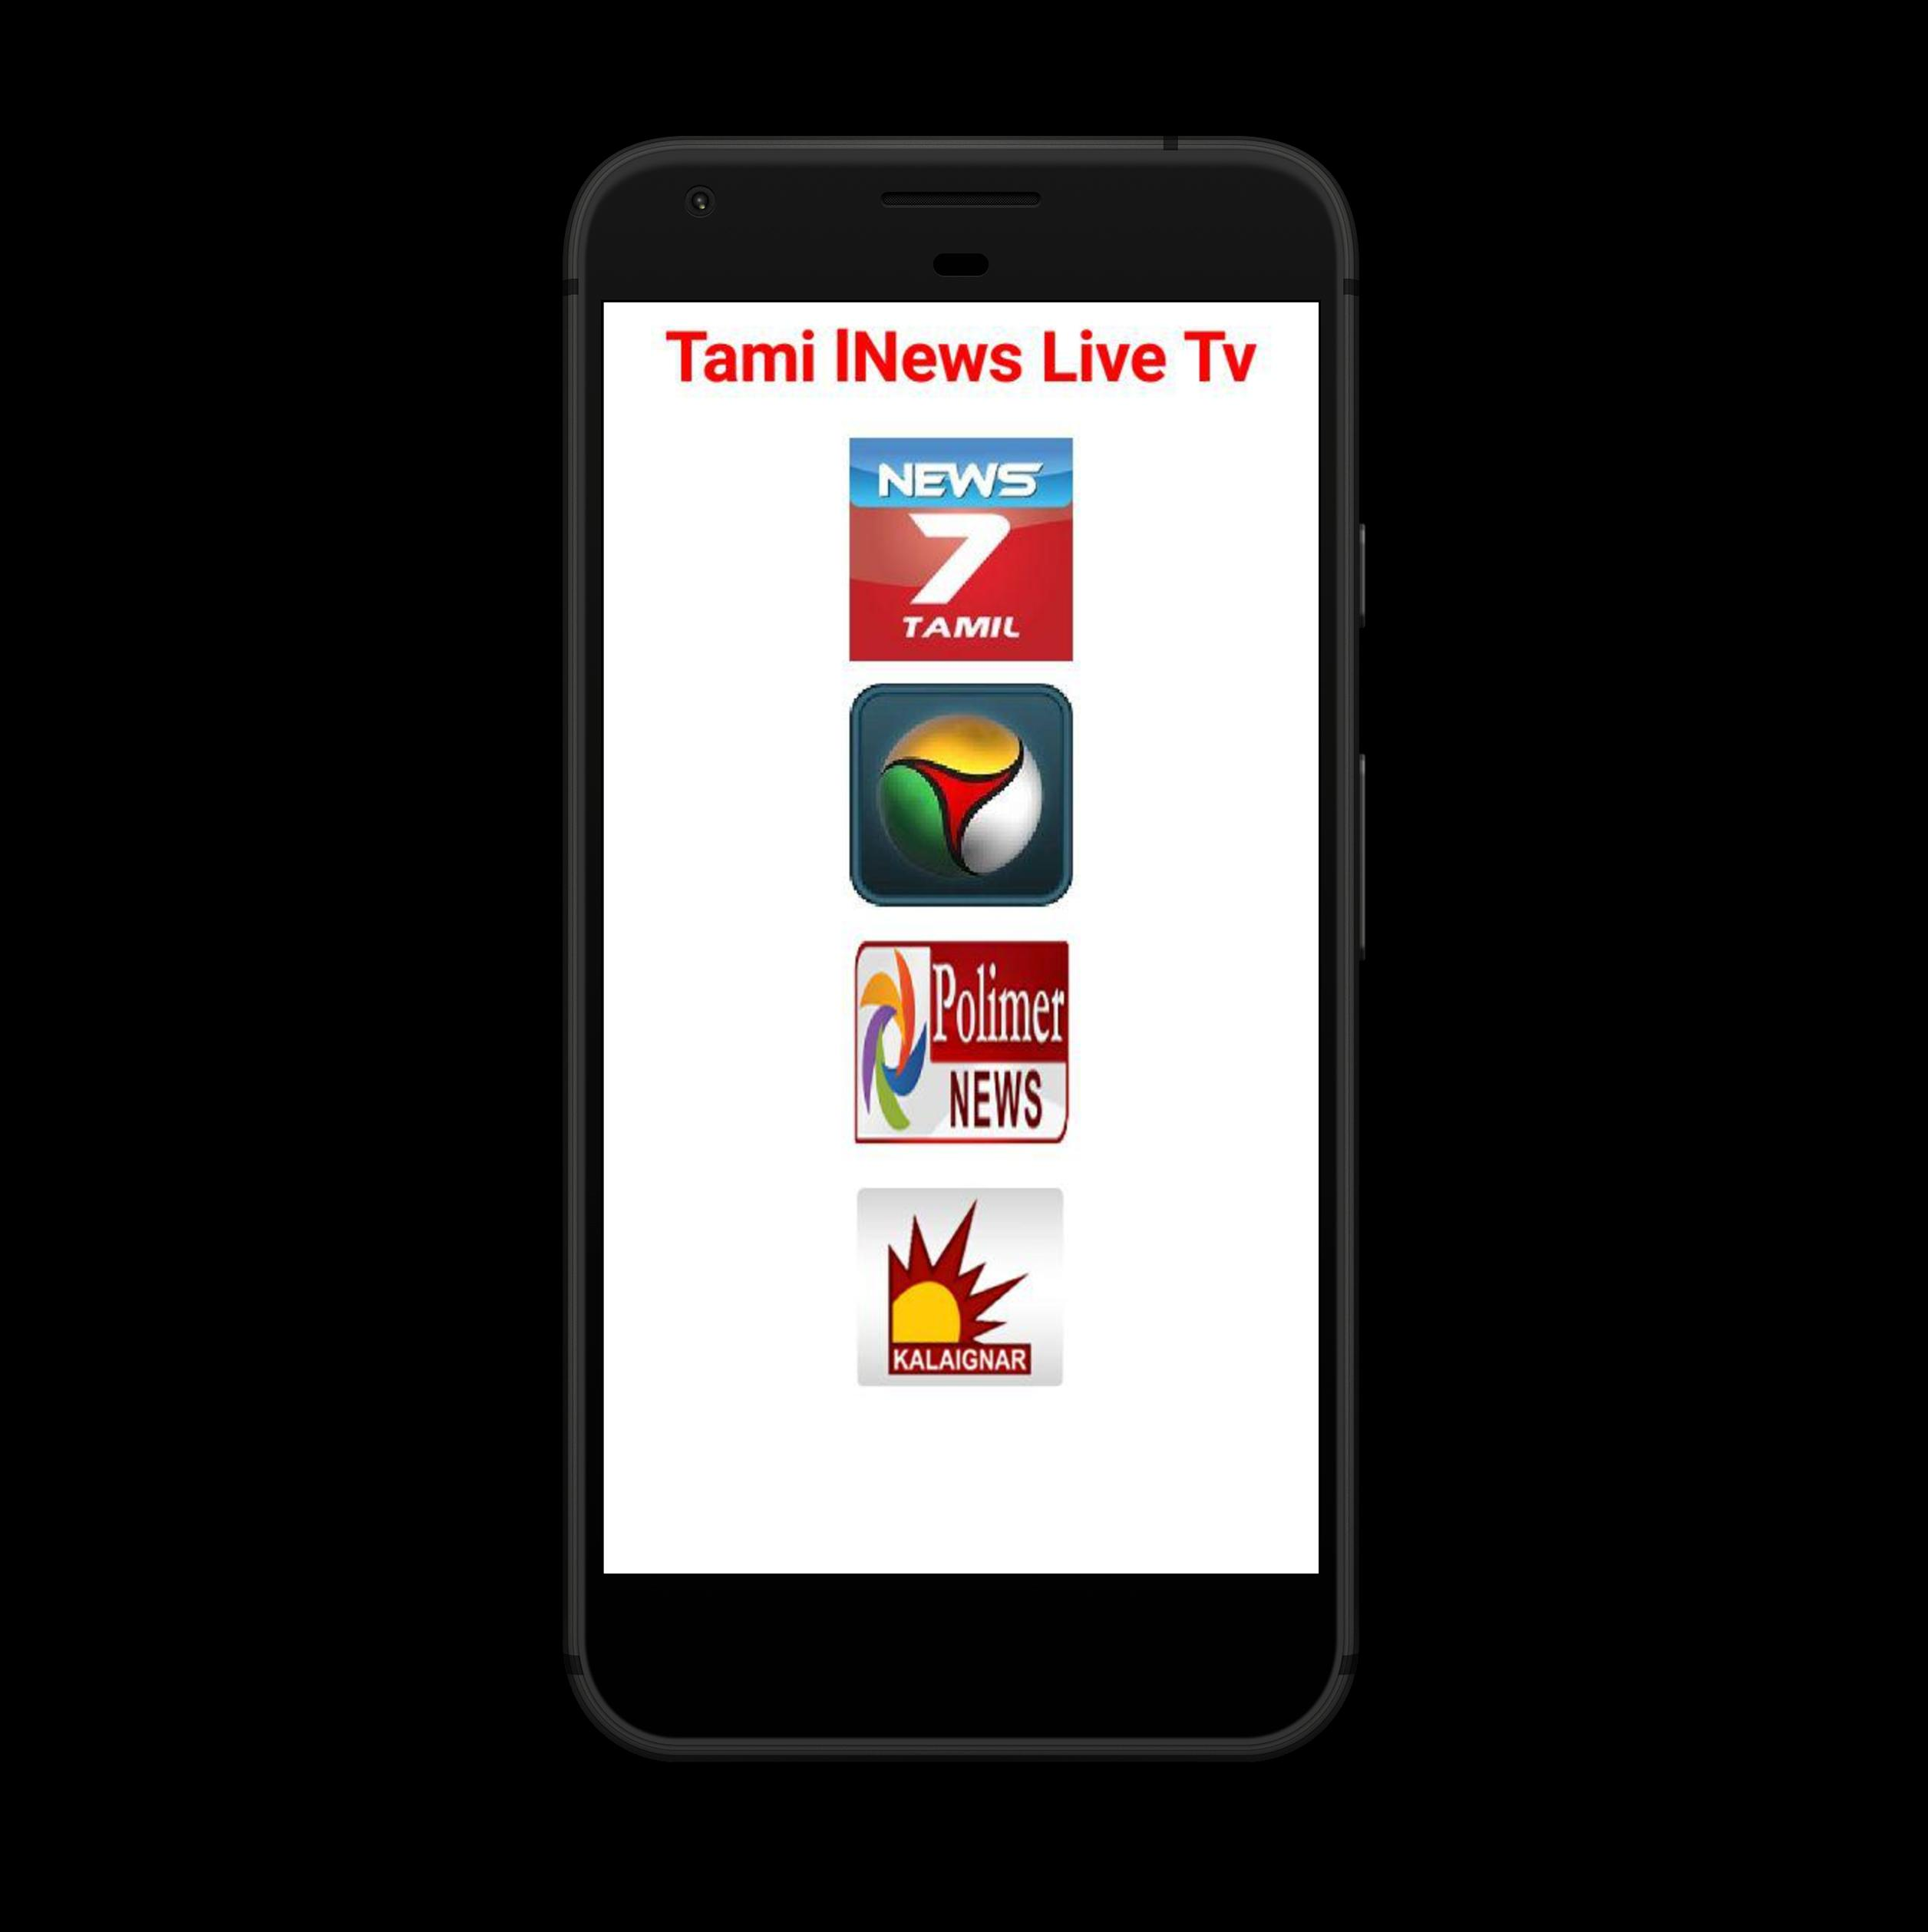 Tamil News Live Tv poster